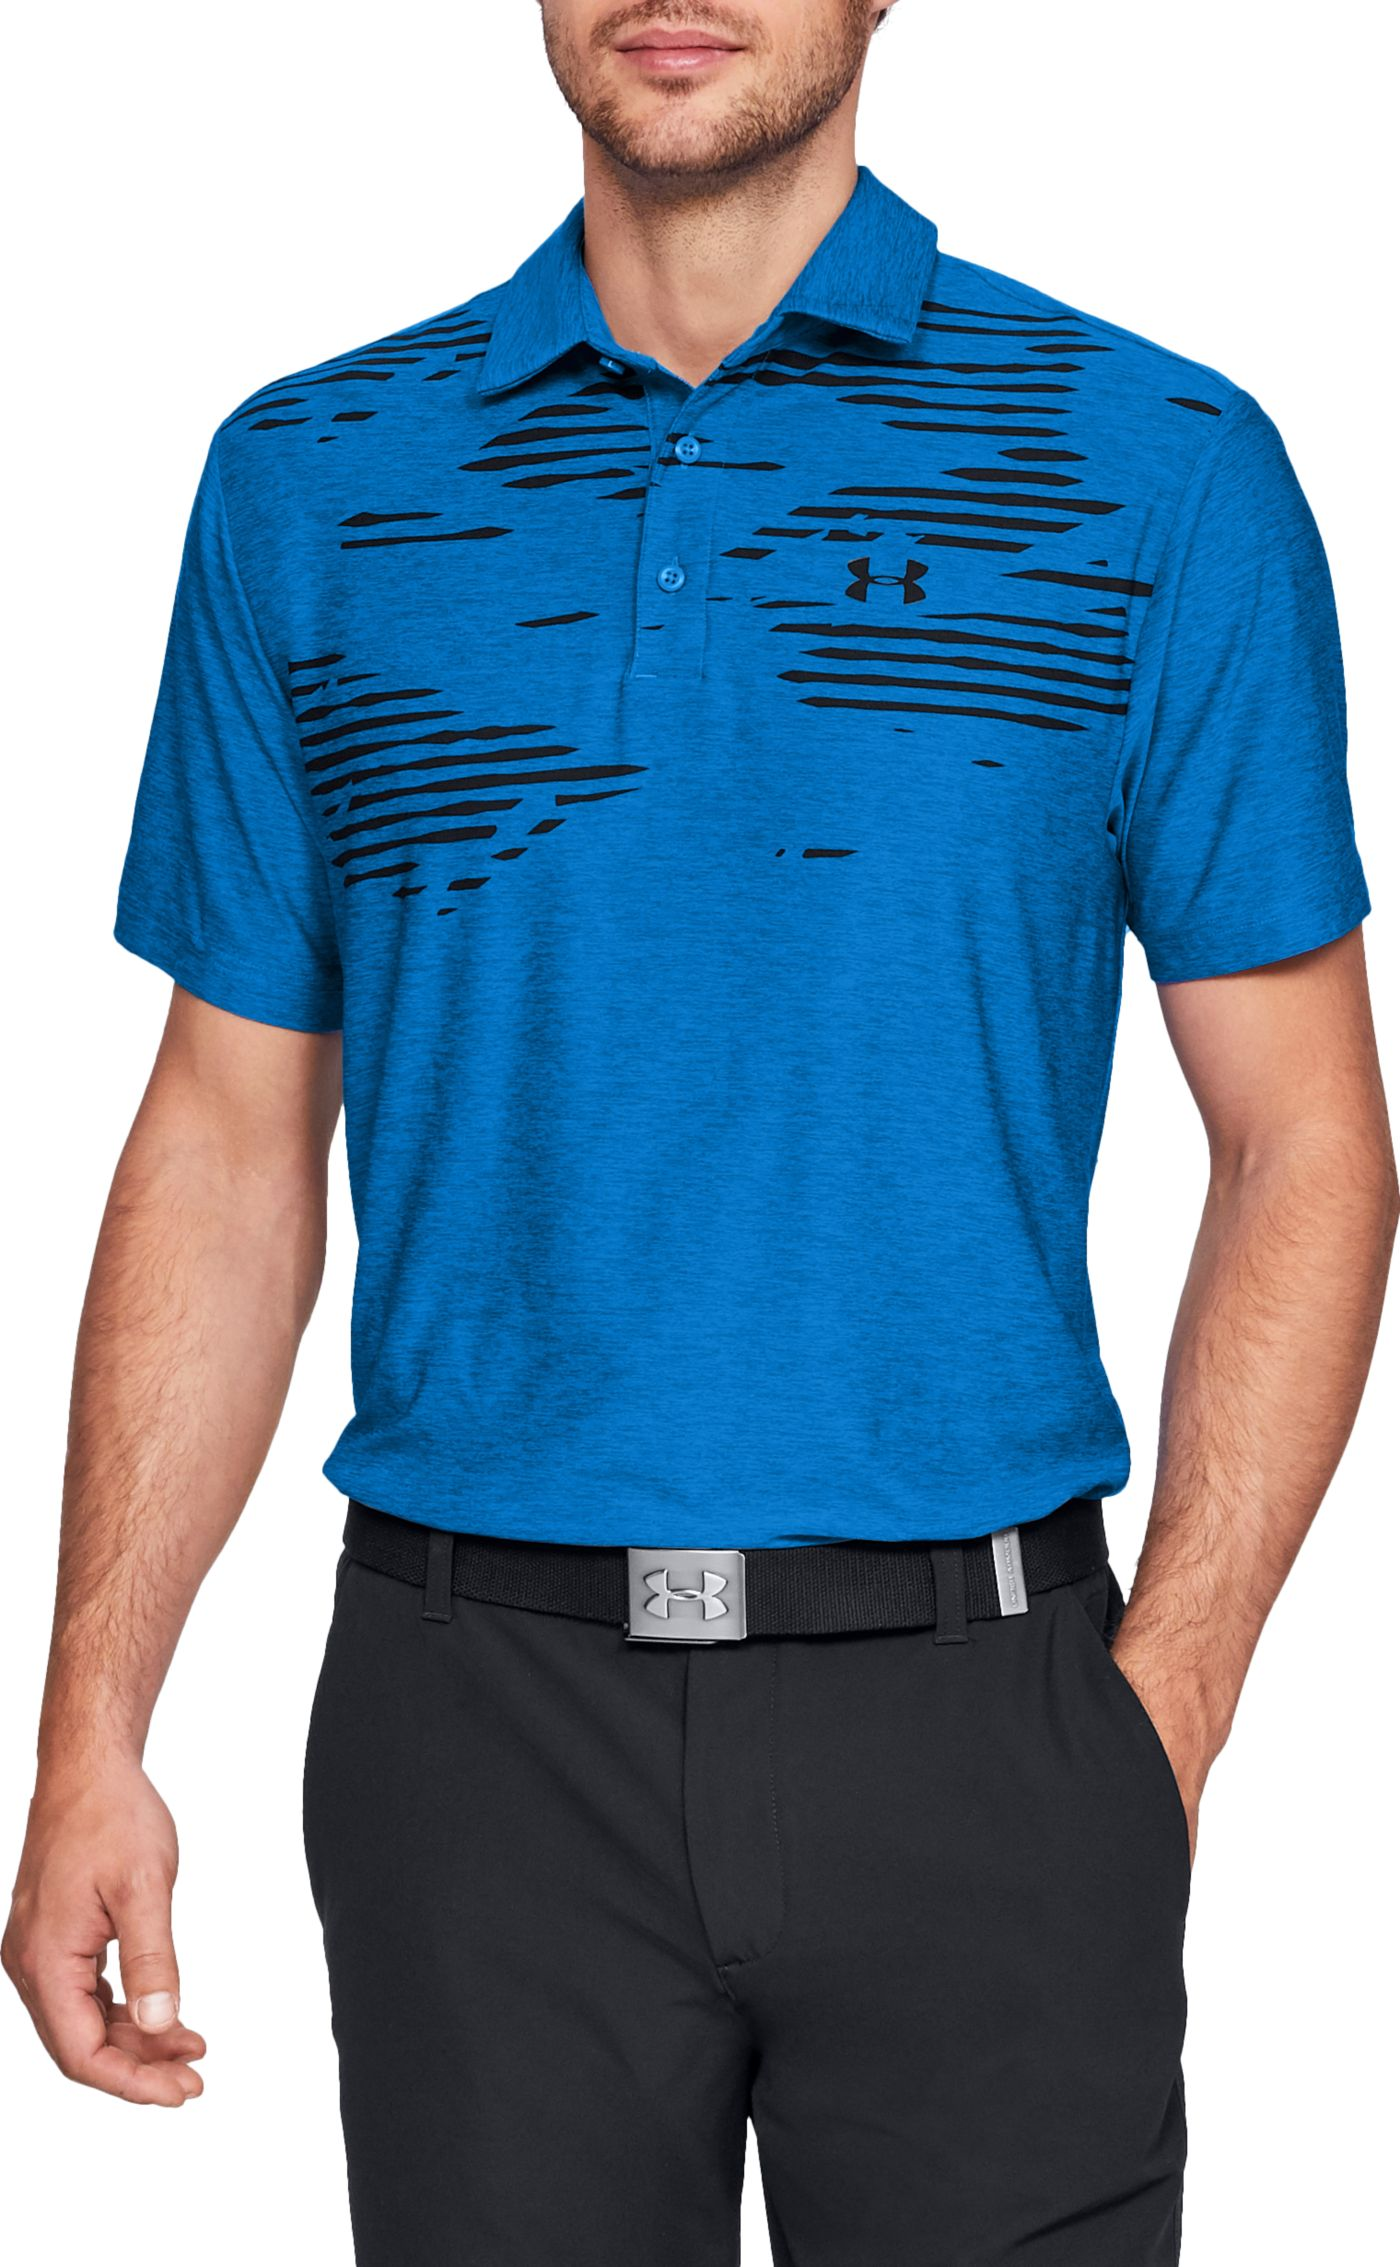 Under Armour Men's Screen Print Golf Polo